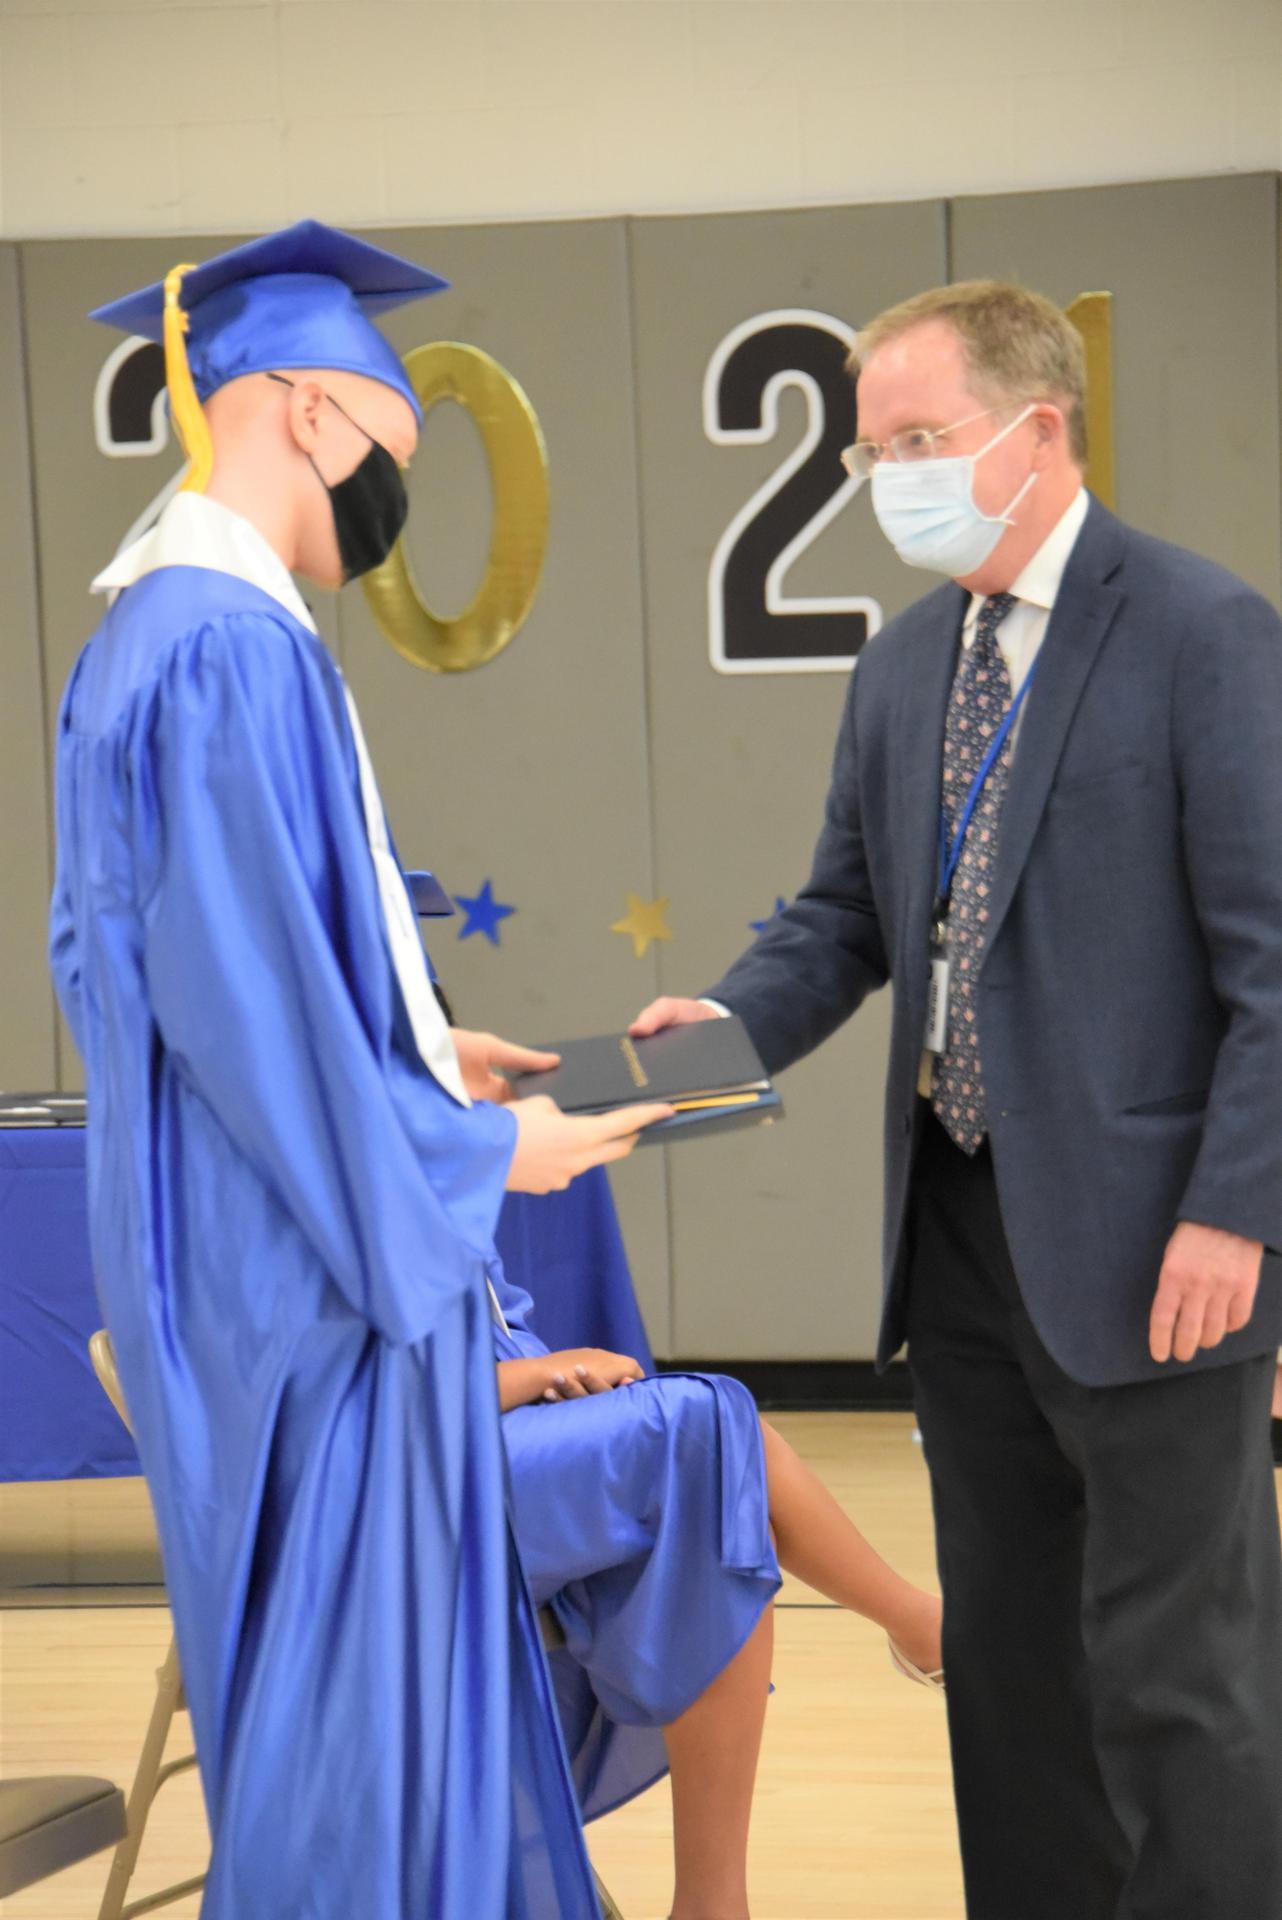 A student is handed a diploma at a graduation ceremony